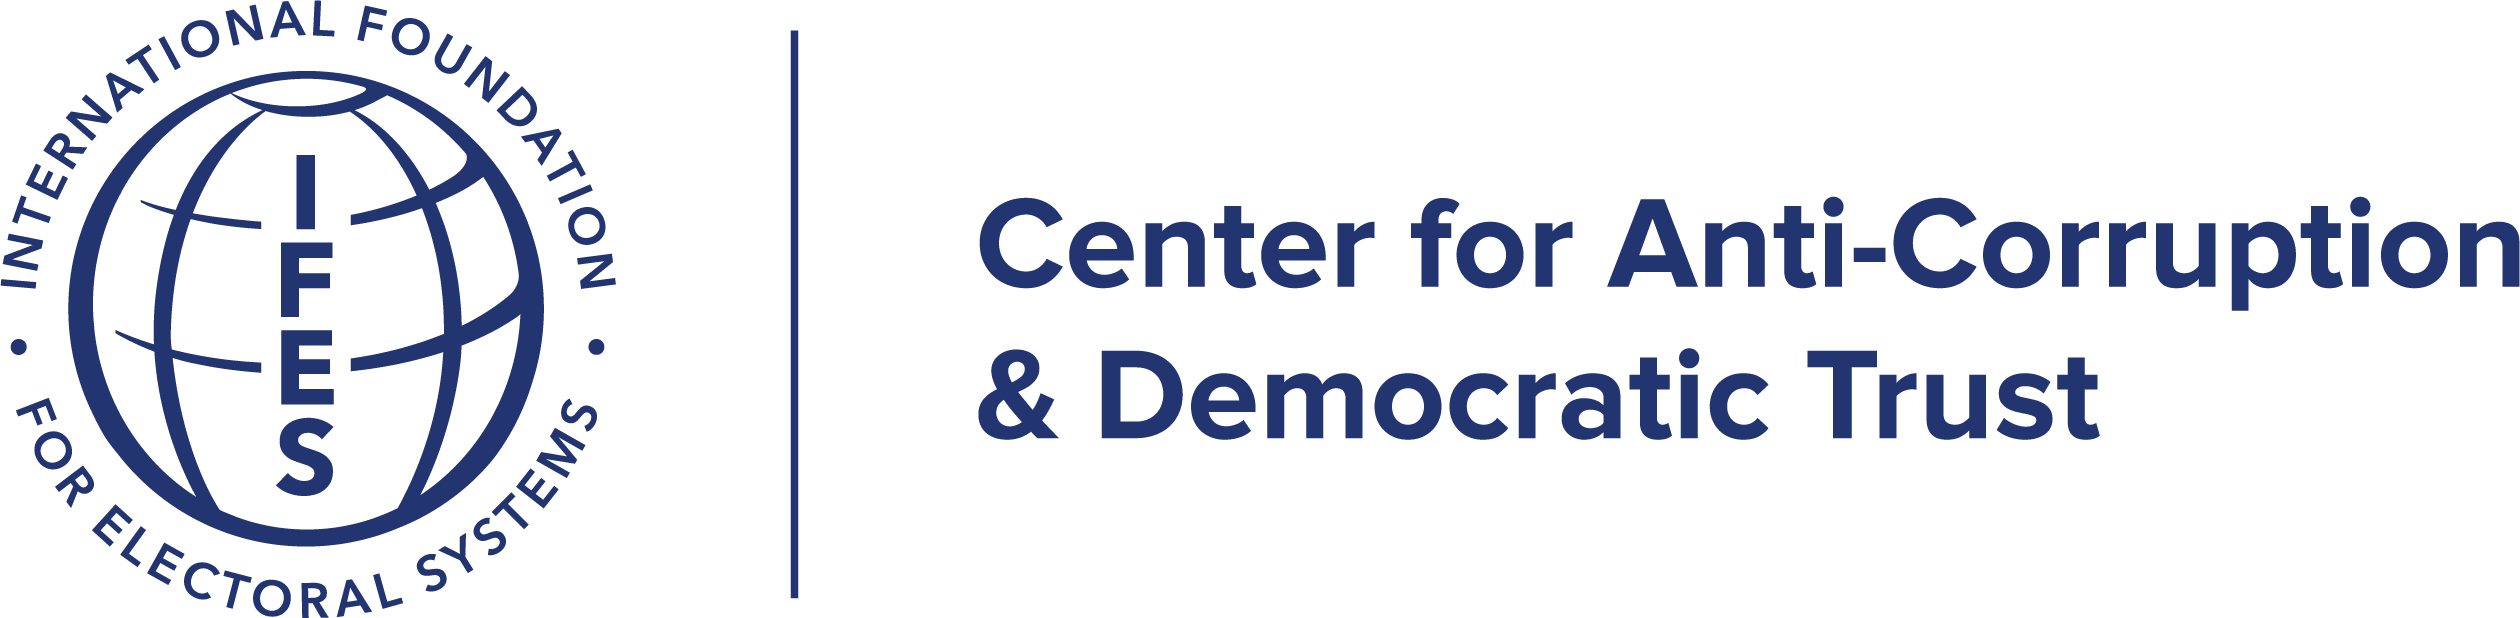 IFES Launches the Center for Anti-Corruption and Democratic Trust